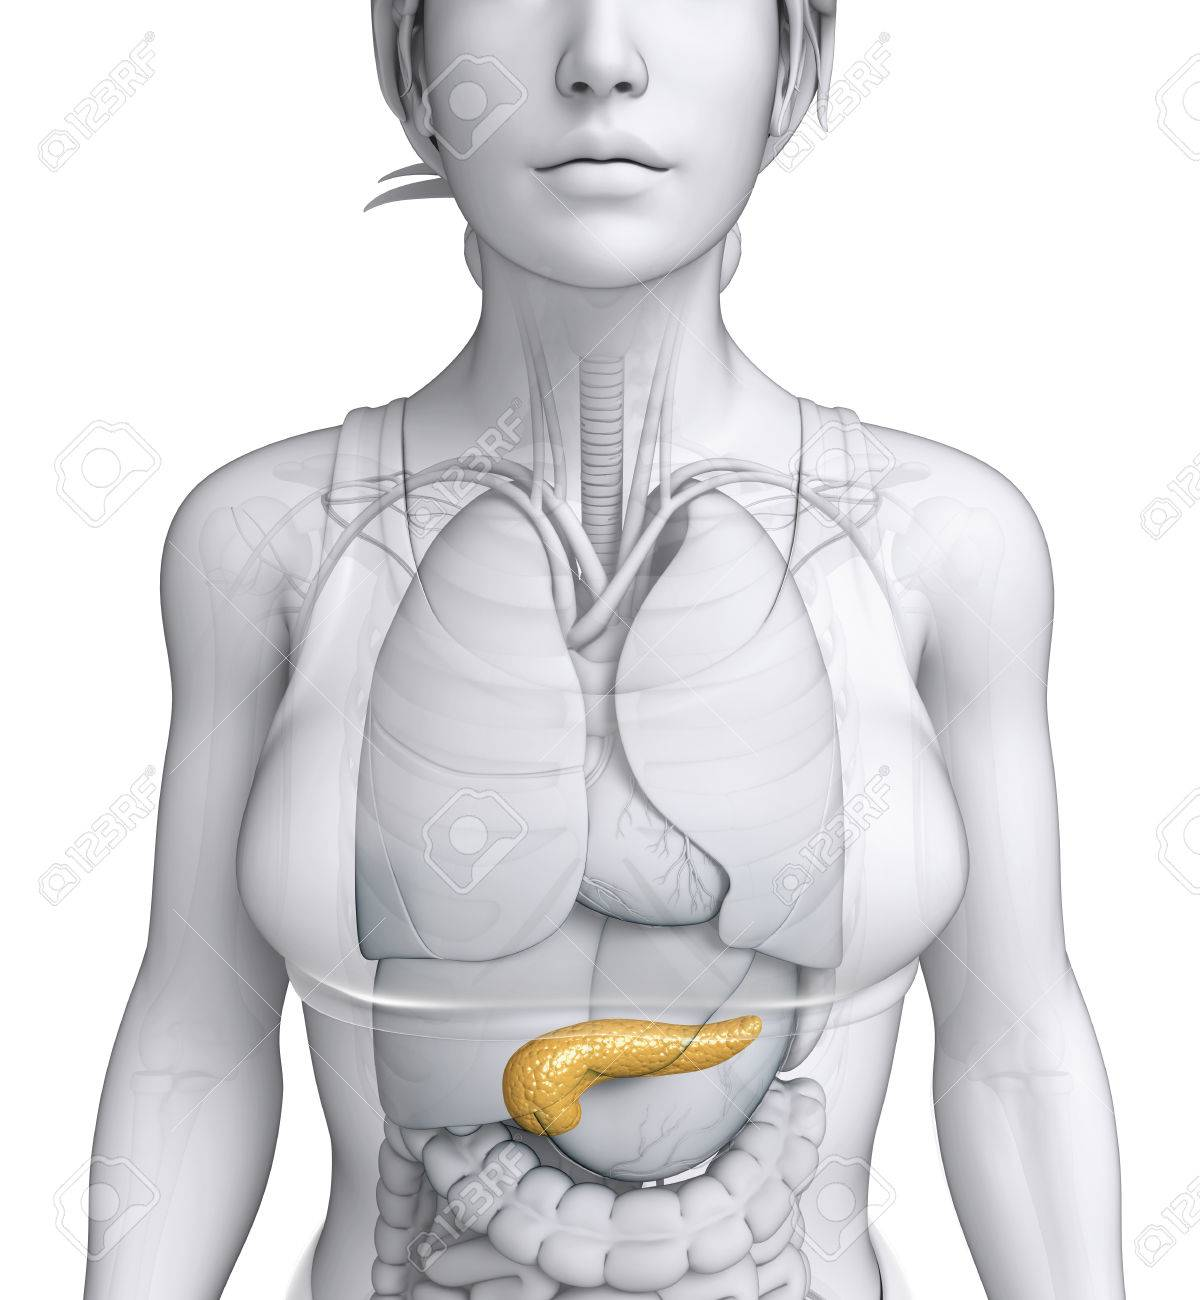 Illustration Of Female Pancreas Anatomy Stock Photo, Picture And ...